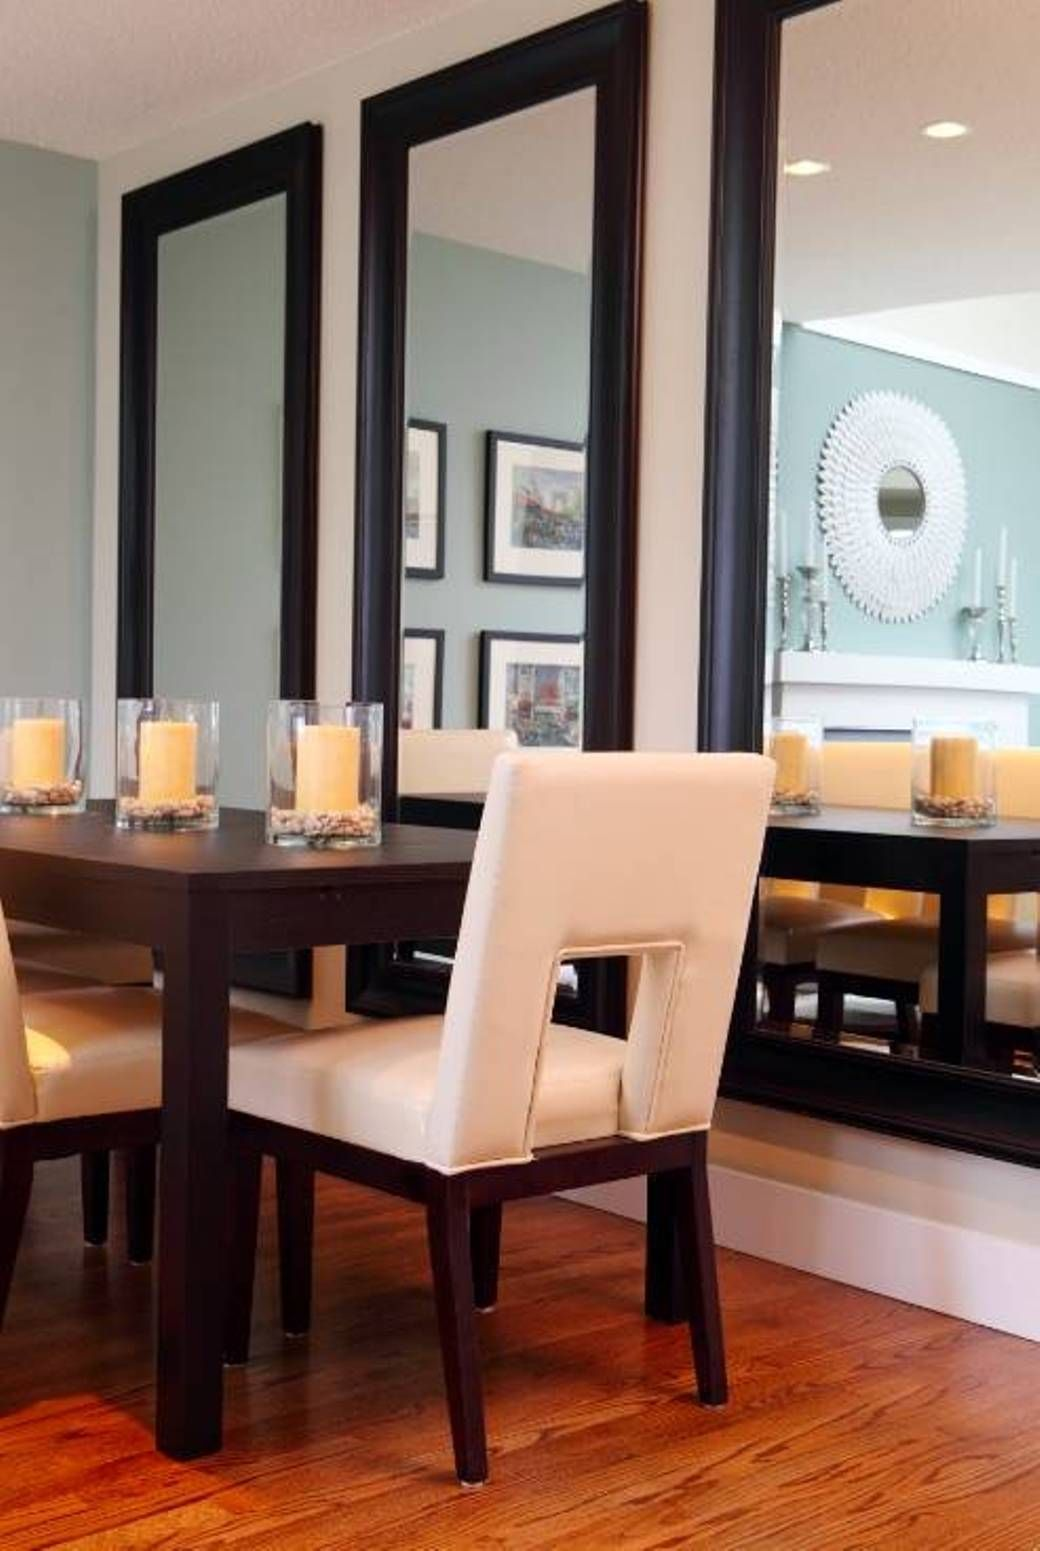 decorating with large mirrors - google search | staging